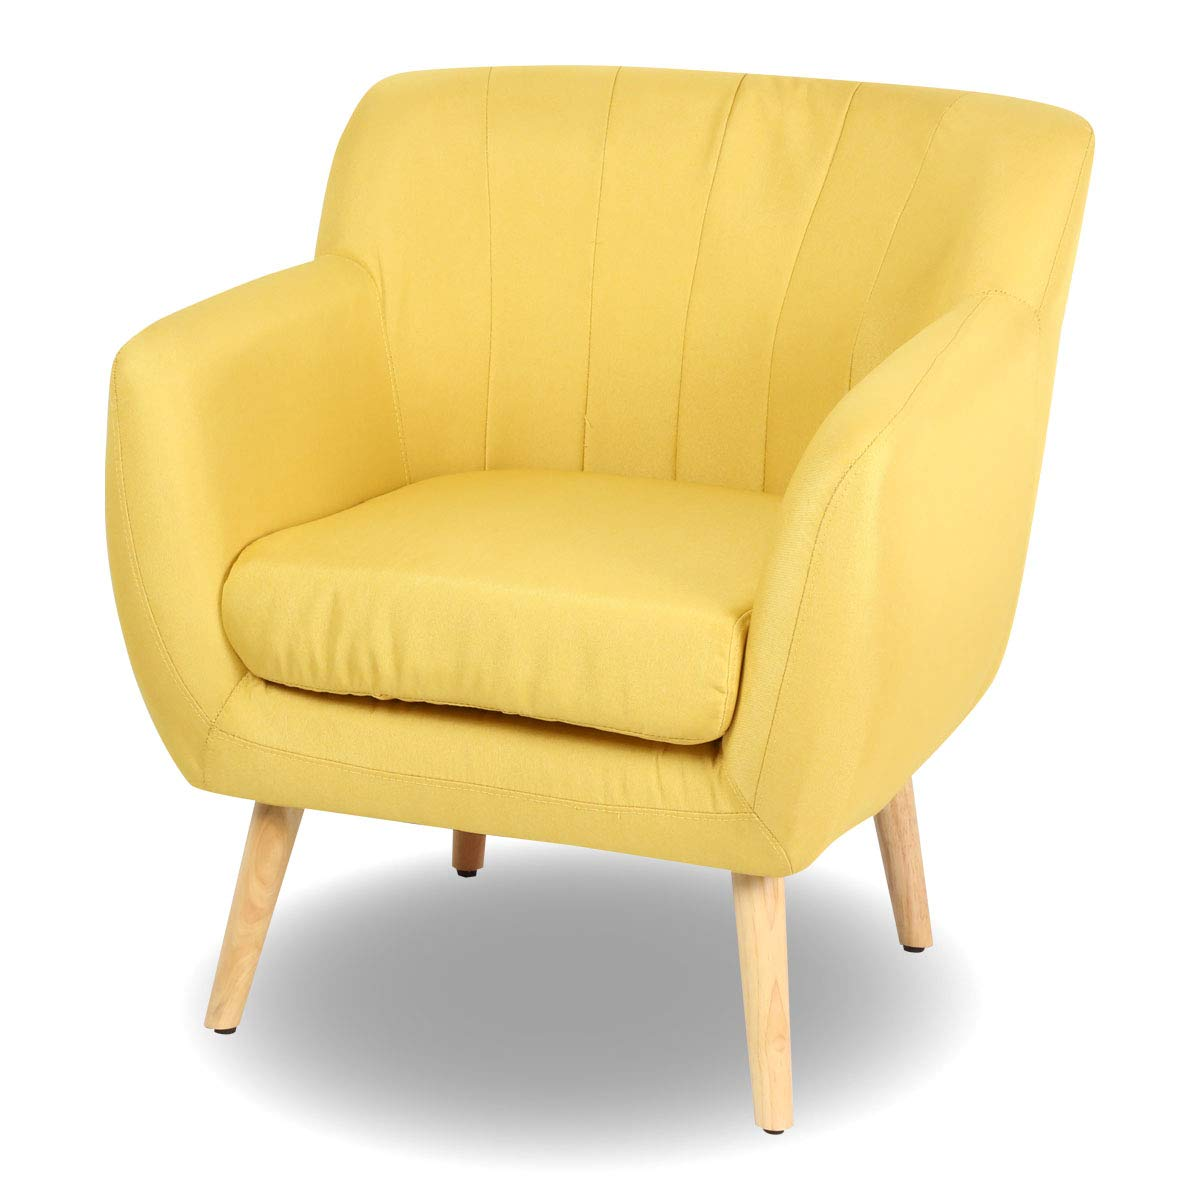 Sofa Fabric Magshion Mid Century Modern Living Room Accent Chair Club Chair Single Sofa Fabric Yellow